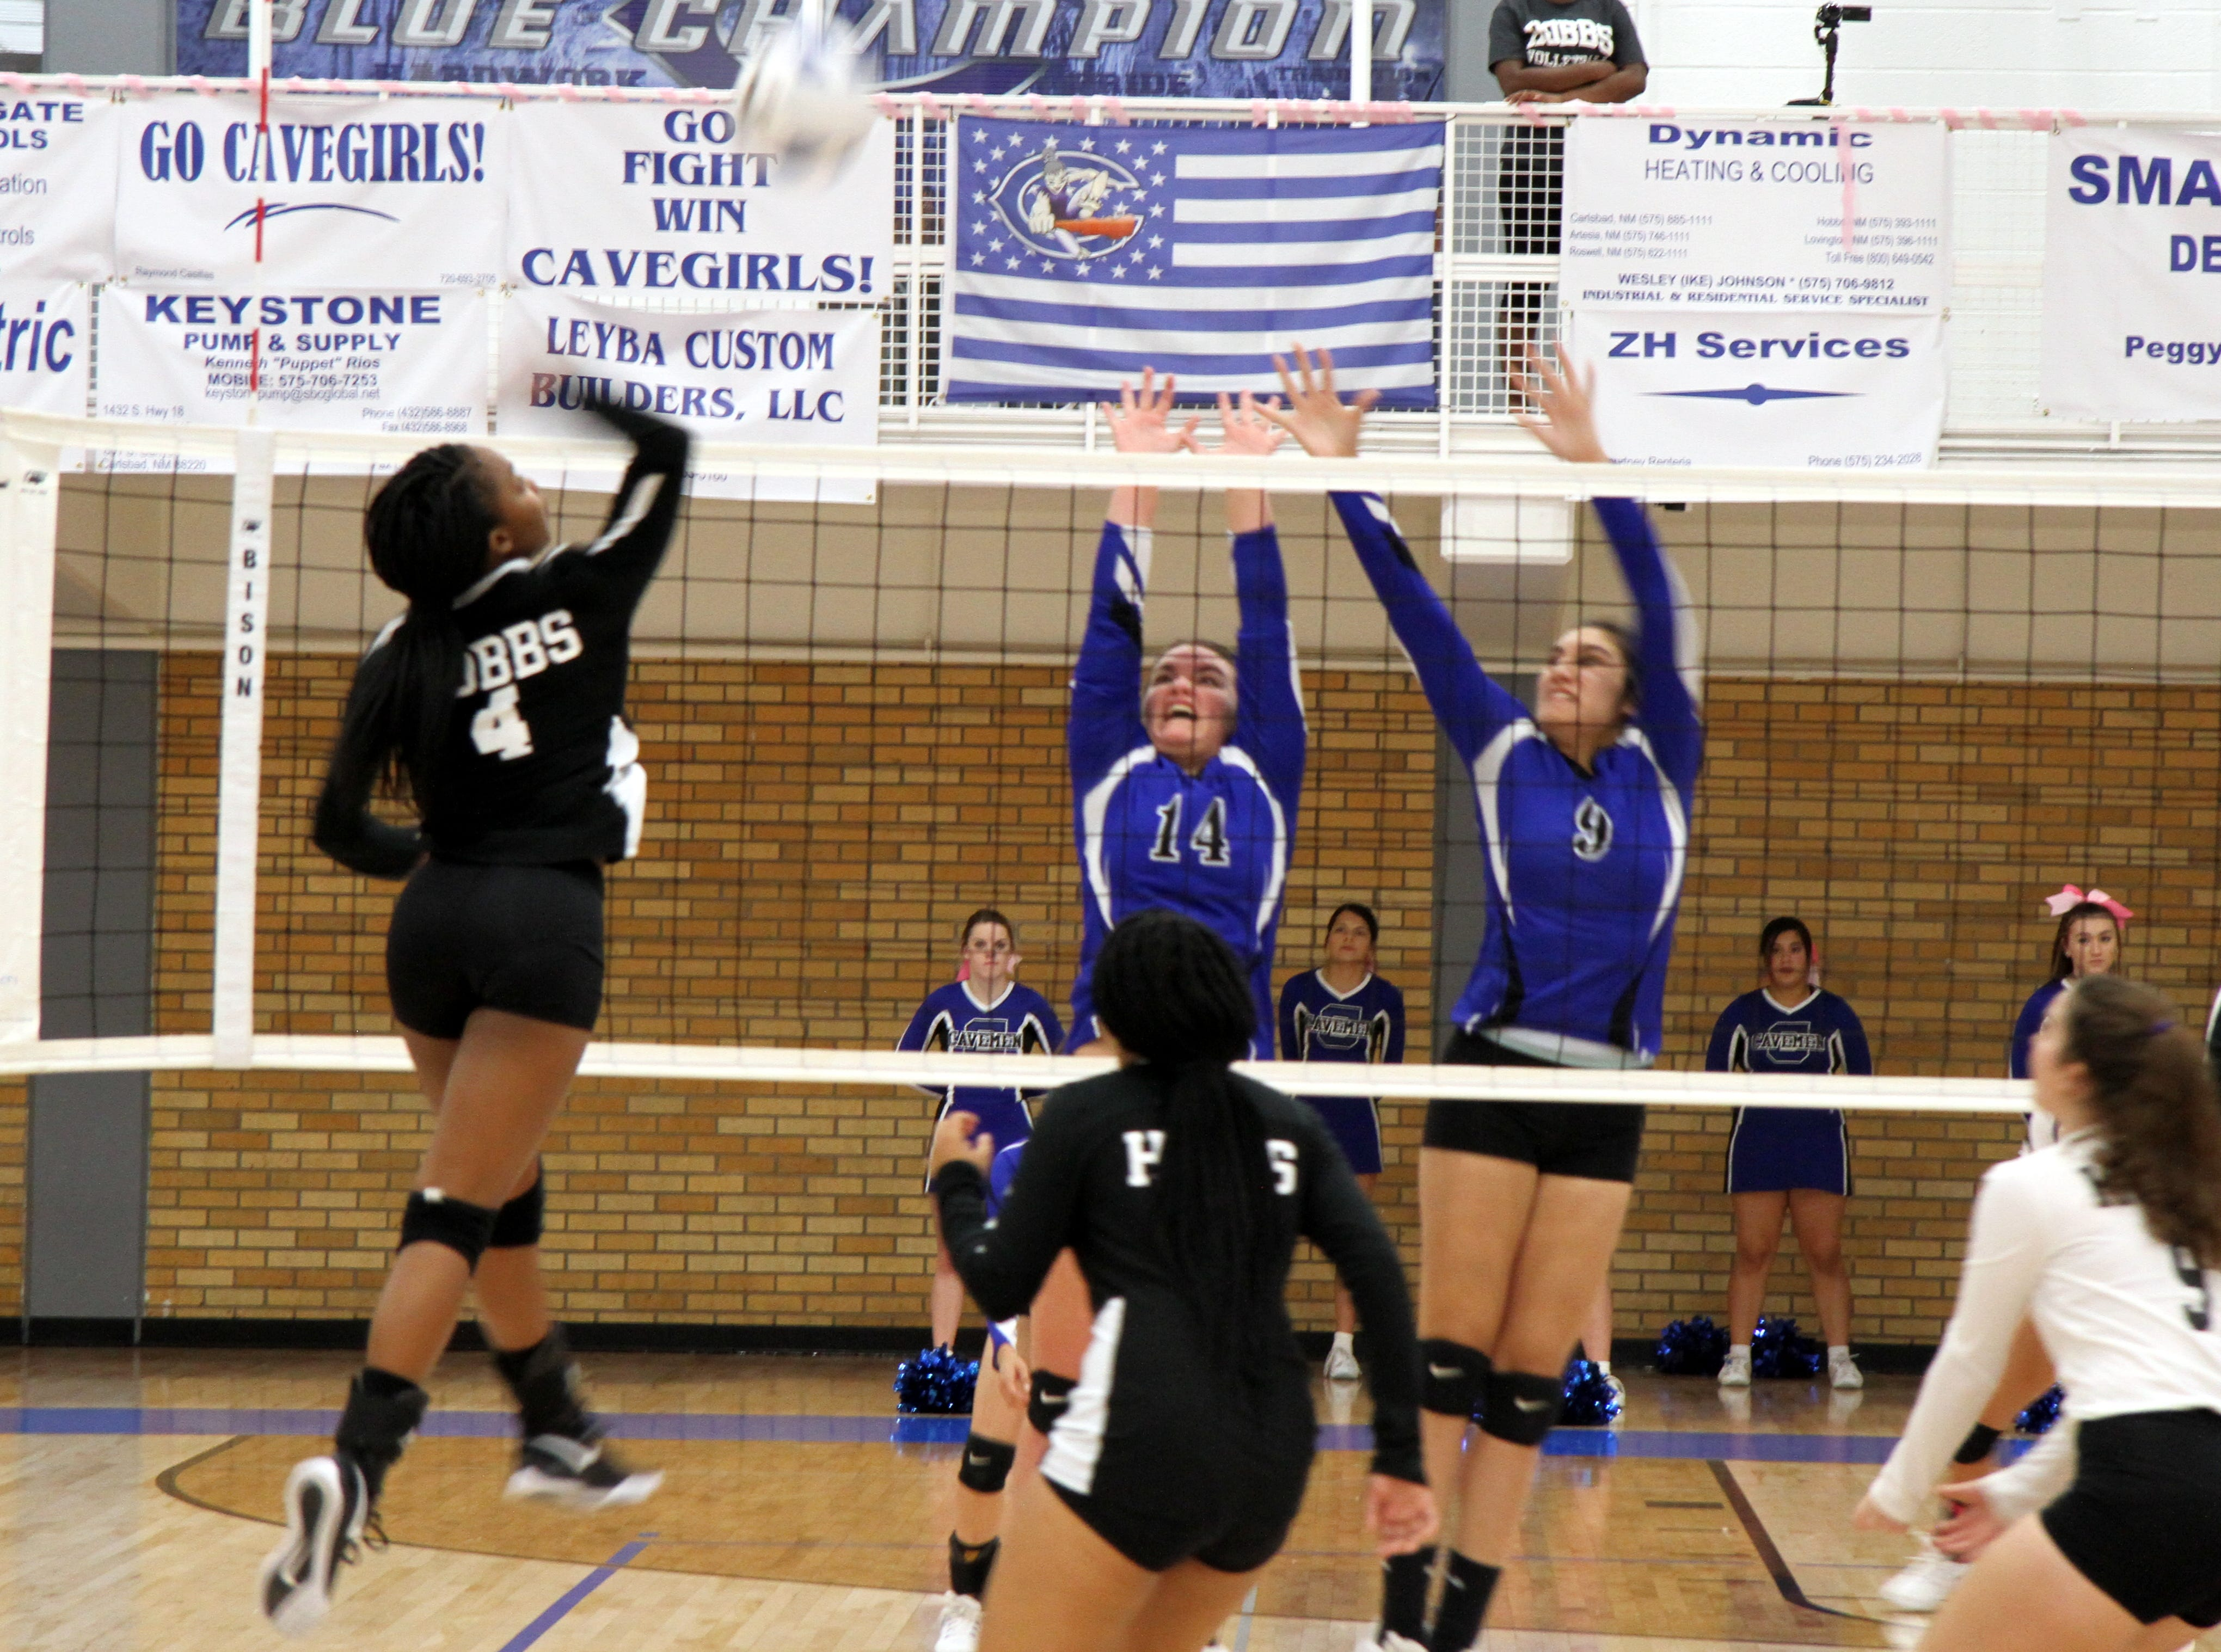 Danaye Boss (14) and Serena Rodriquez (9) go for a block during Tuesday's match against Hobbs.